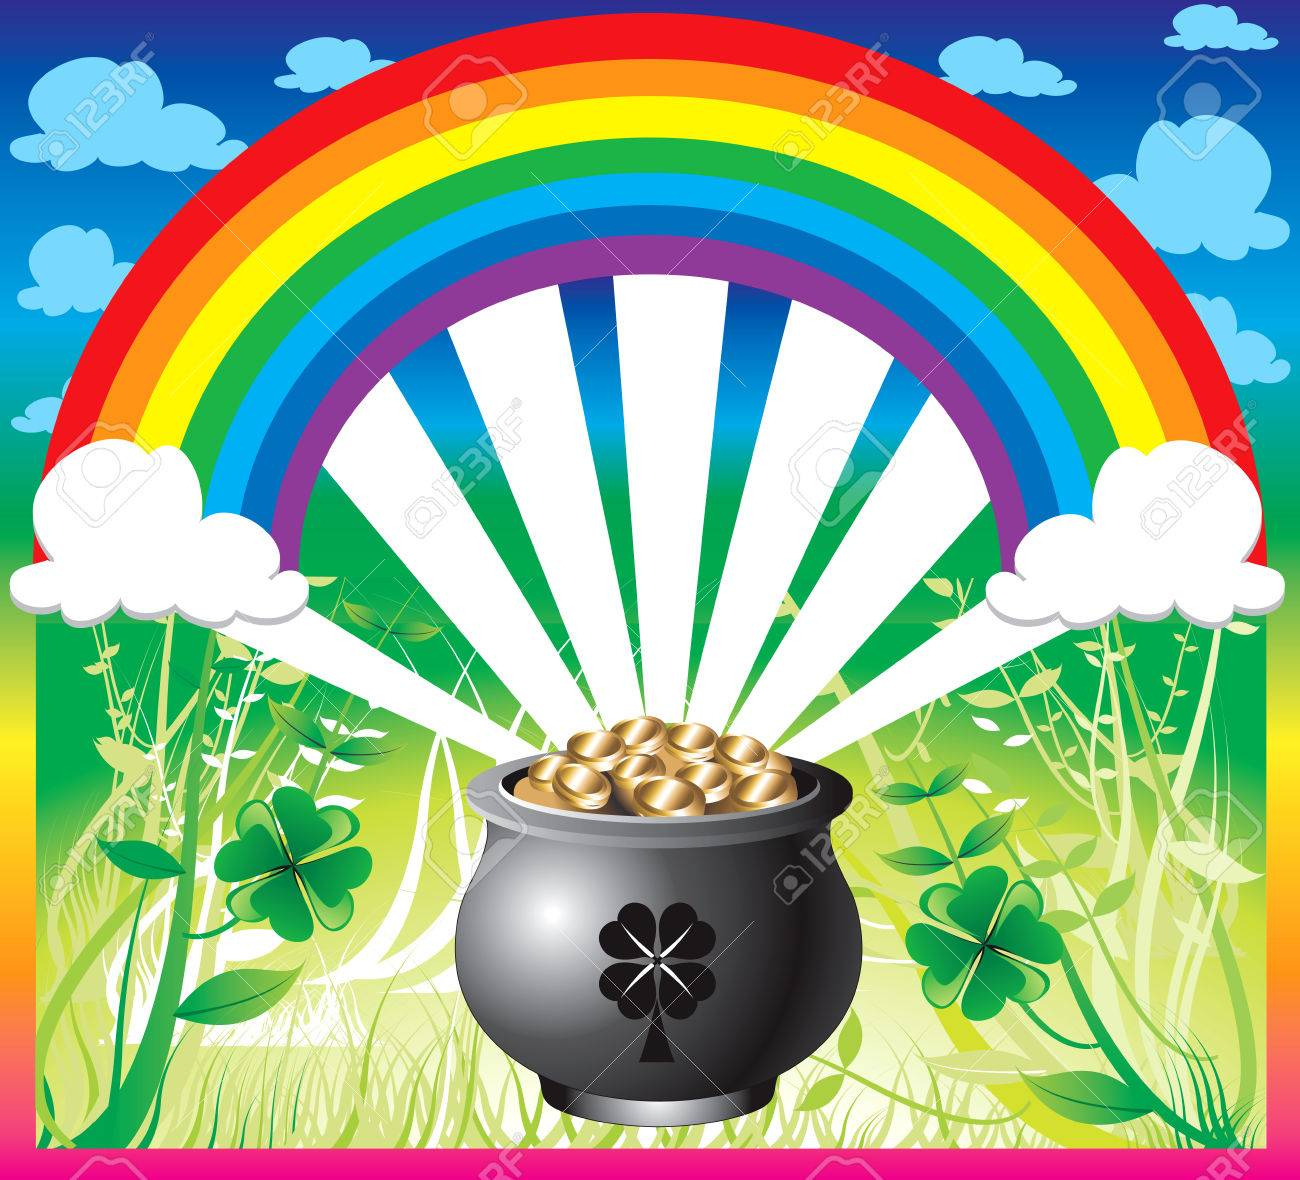 Illustration of pot of gold rainbow with a colorful background and a place for text or imagery. Stock Vector - 6472129